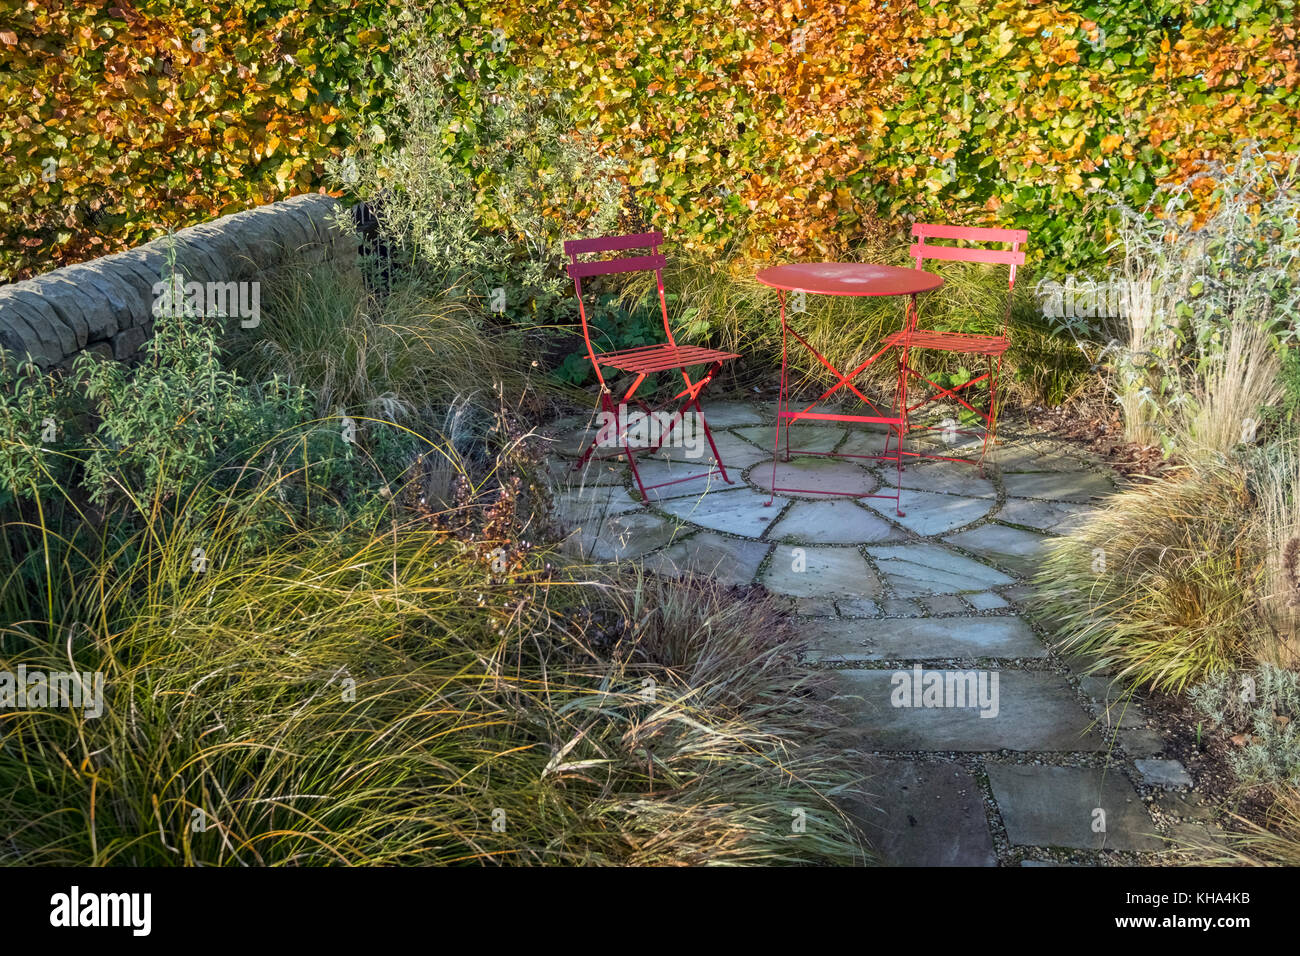 Small garden patio area with paving slabs and dining table and chairs, autumn, England, UK Stock Photo